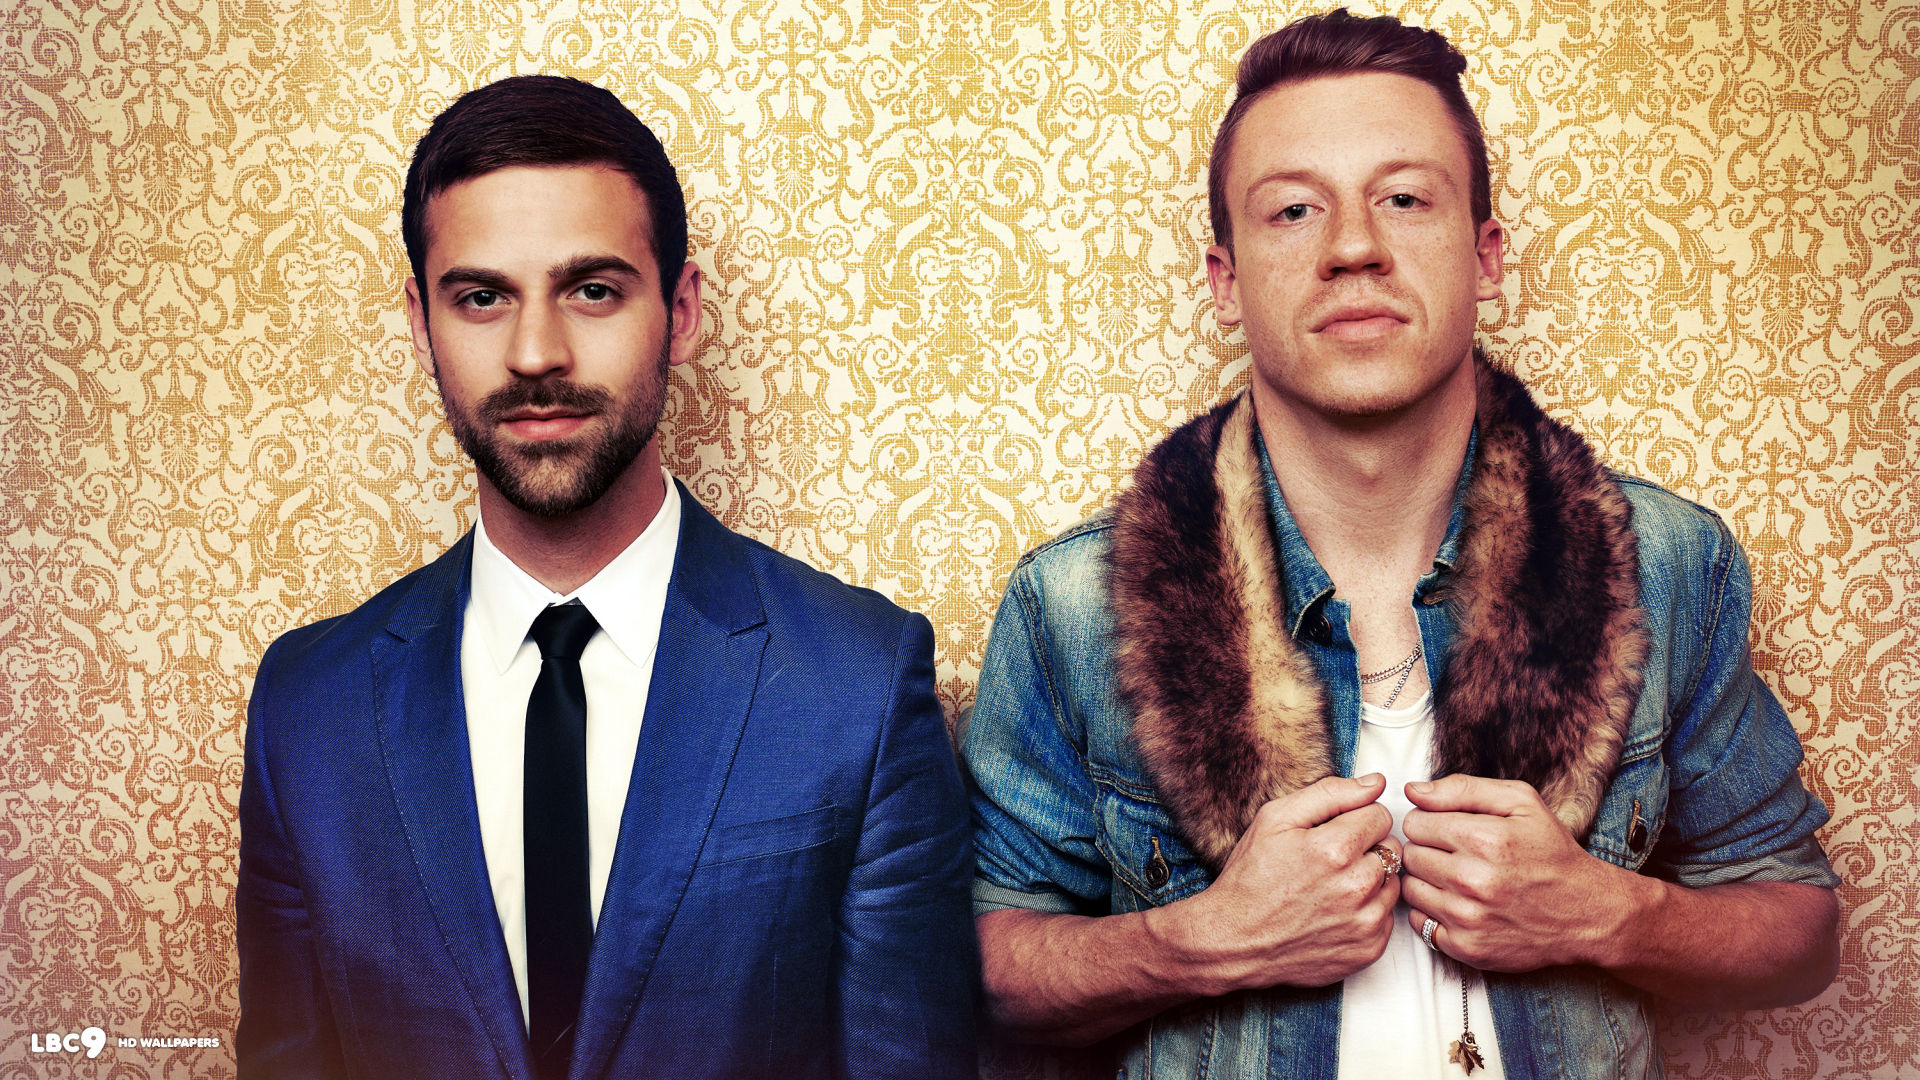 macklemore-and-ryan-lewis-wallpaper-wallpaper-2